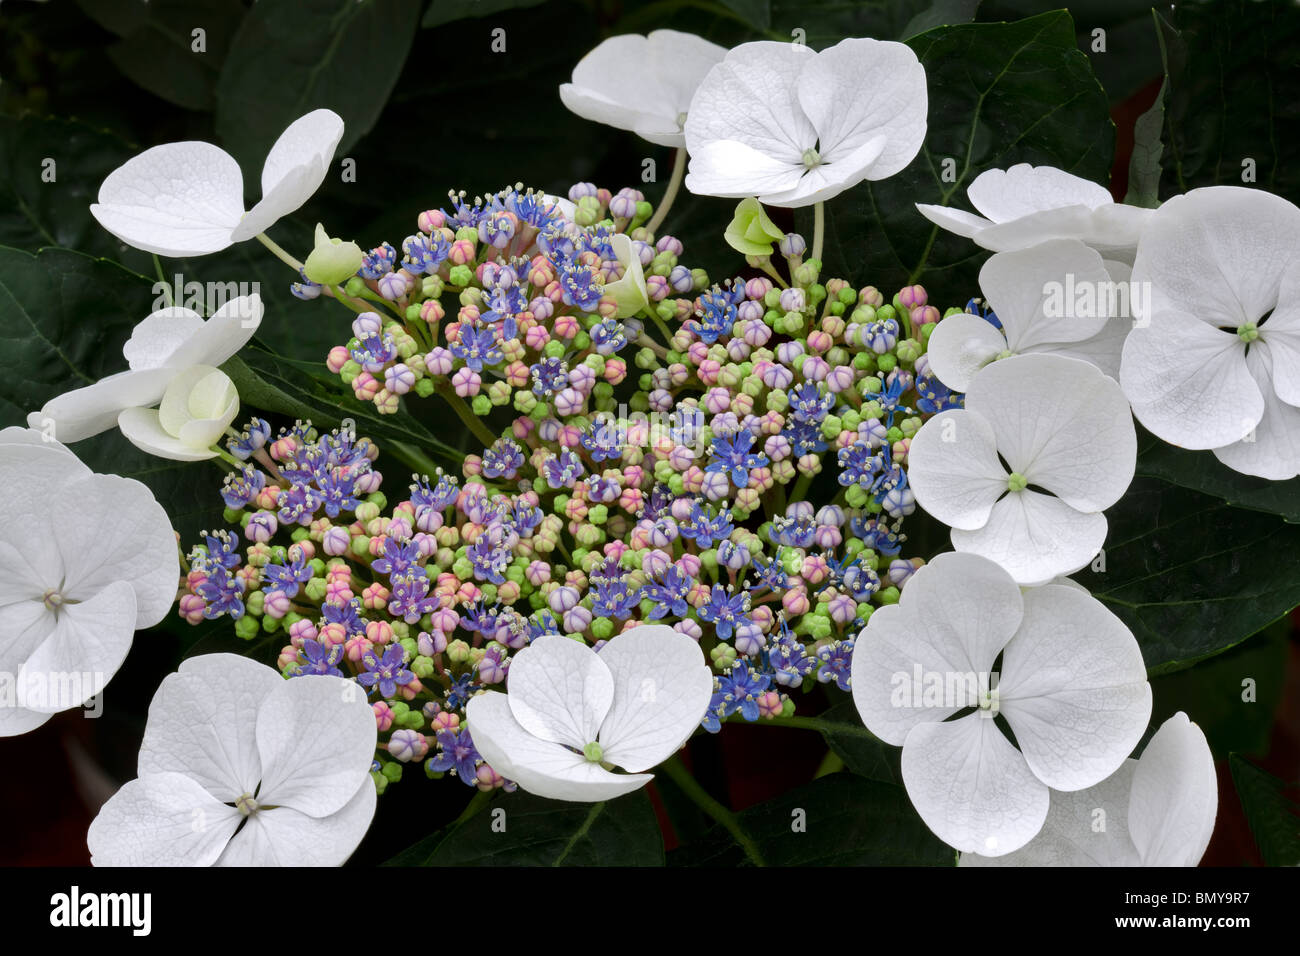 Close up of Lace Cup Hydrangea. (Hydrangea macrophylla-lace Cap. - Stock Image